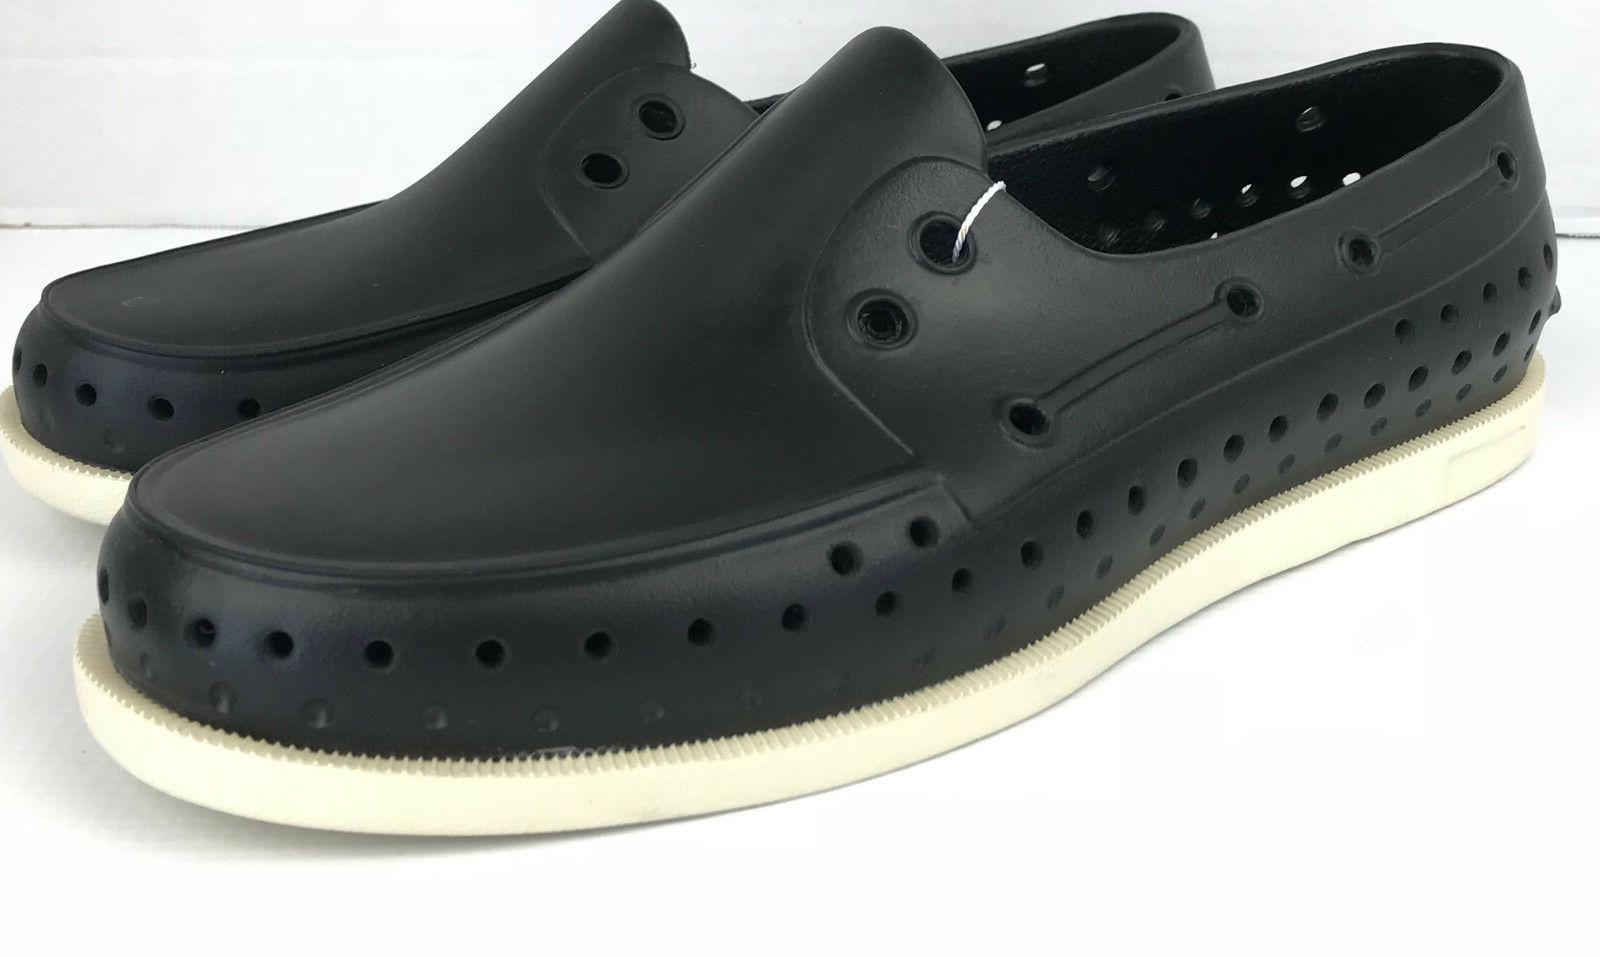 howard slip on loafers boat shoes unisex